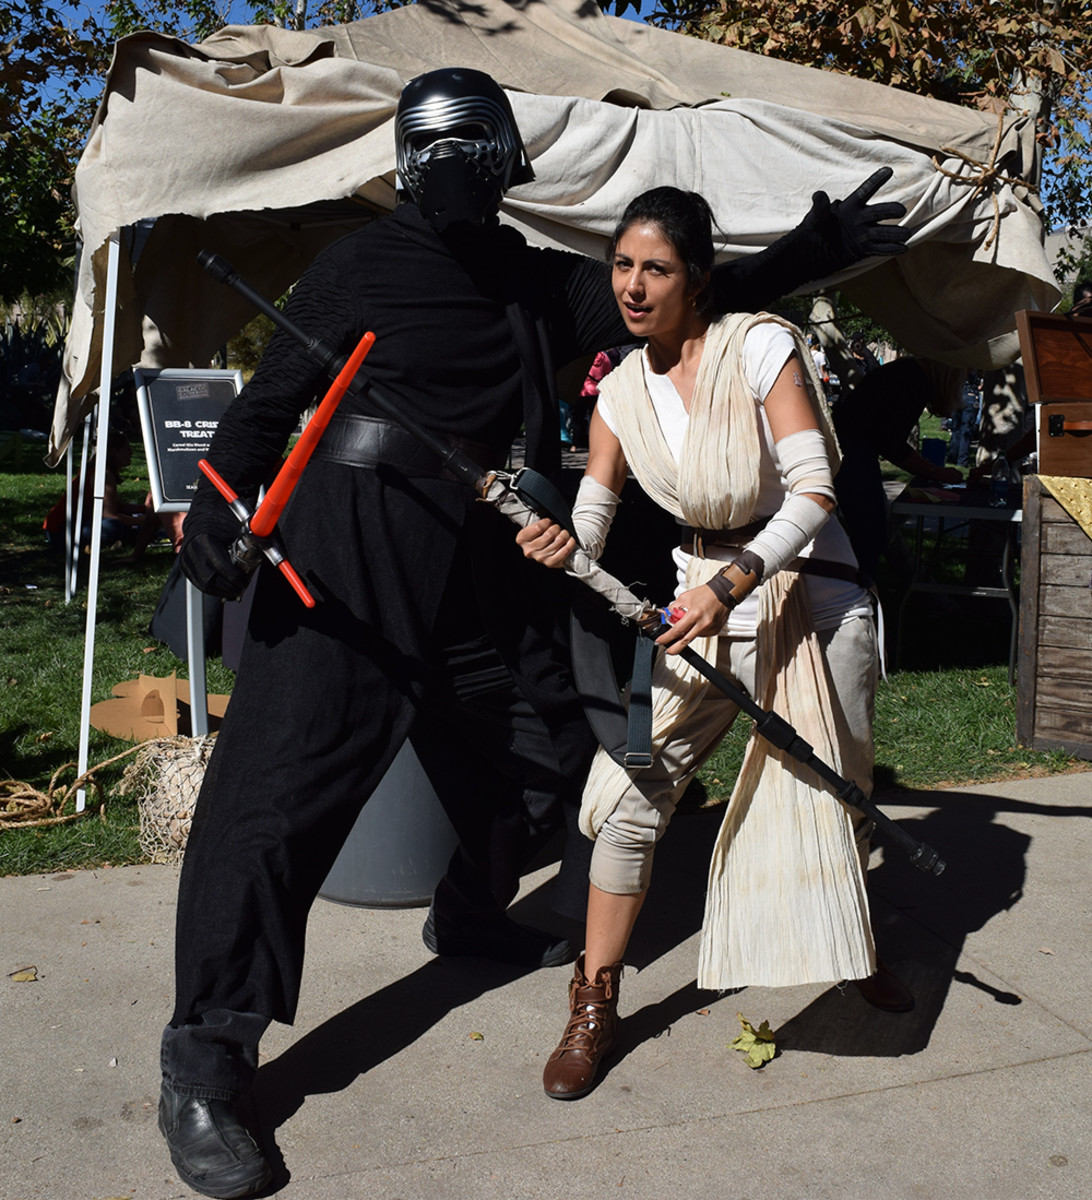 Go ahead, dress up as Kylo Ren and Rey for Halloween